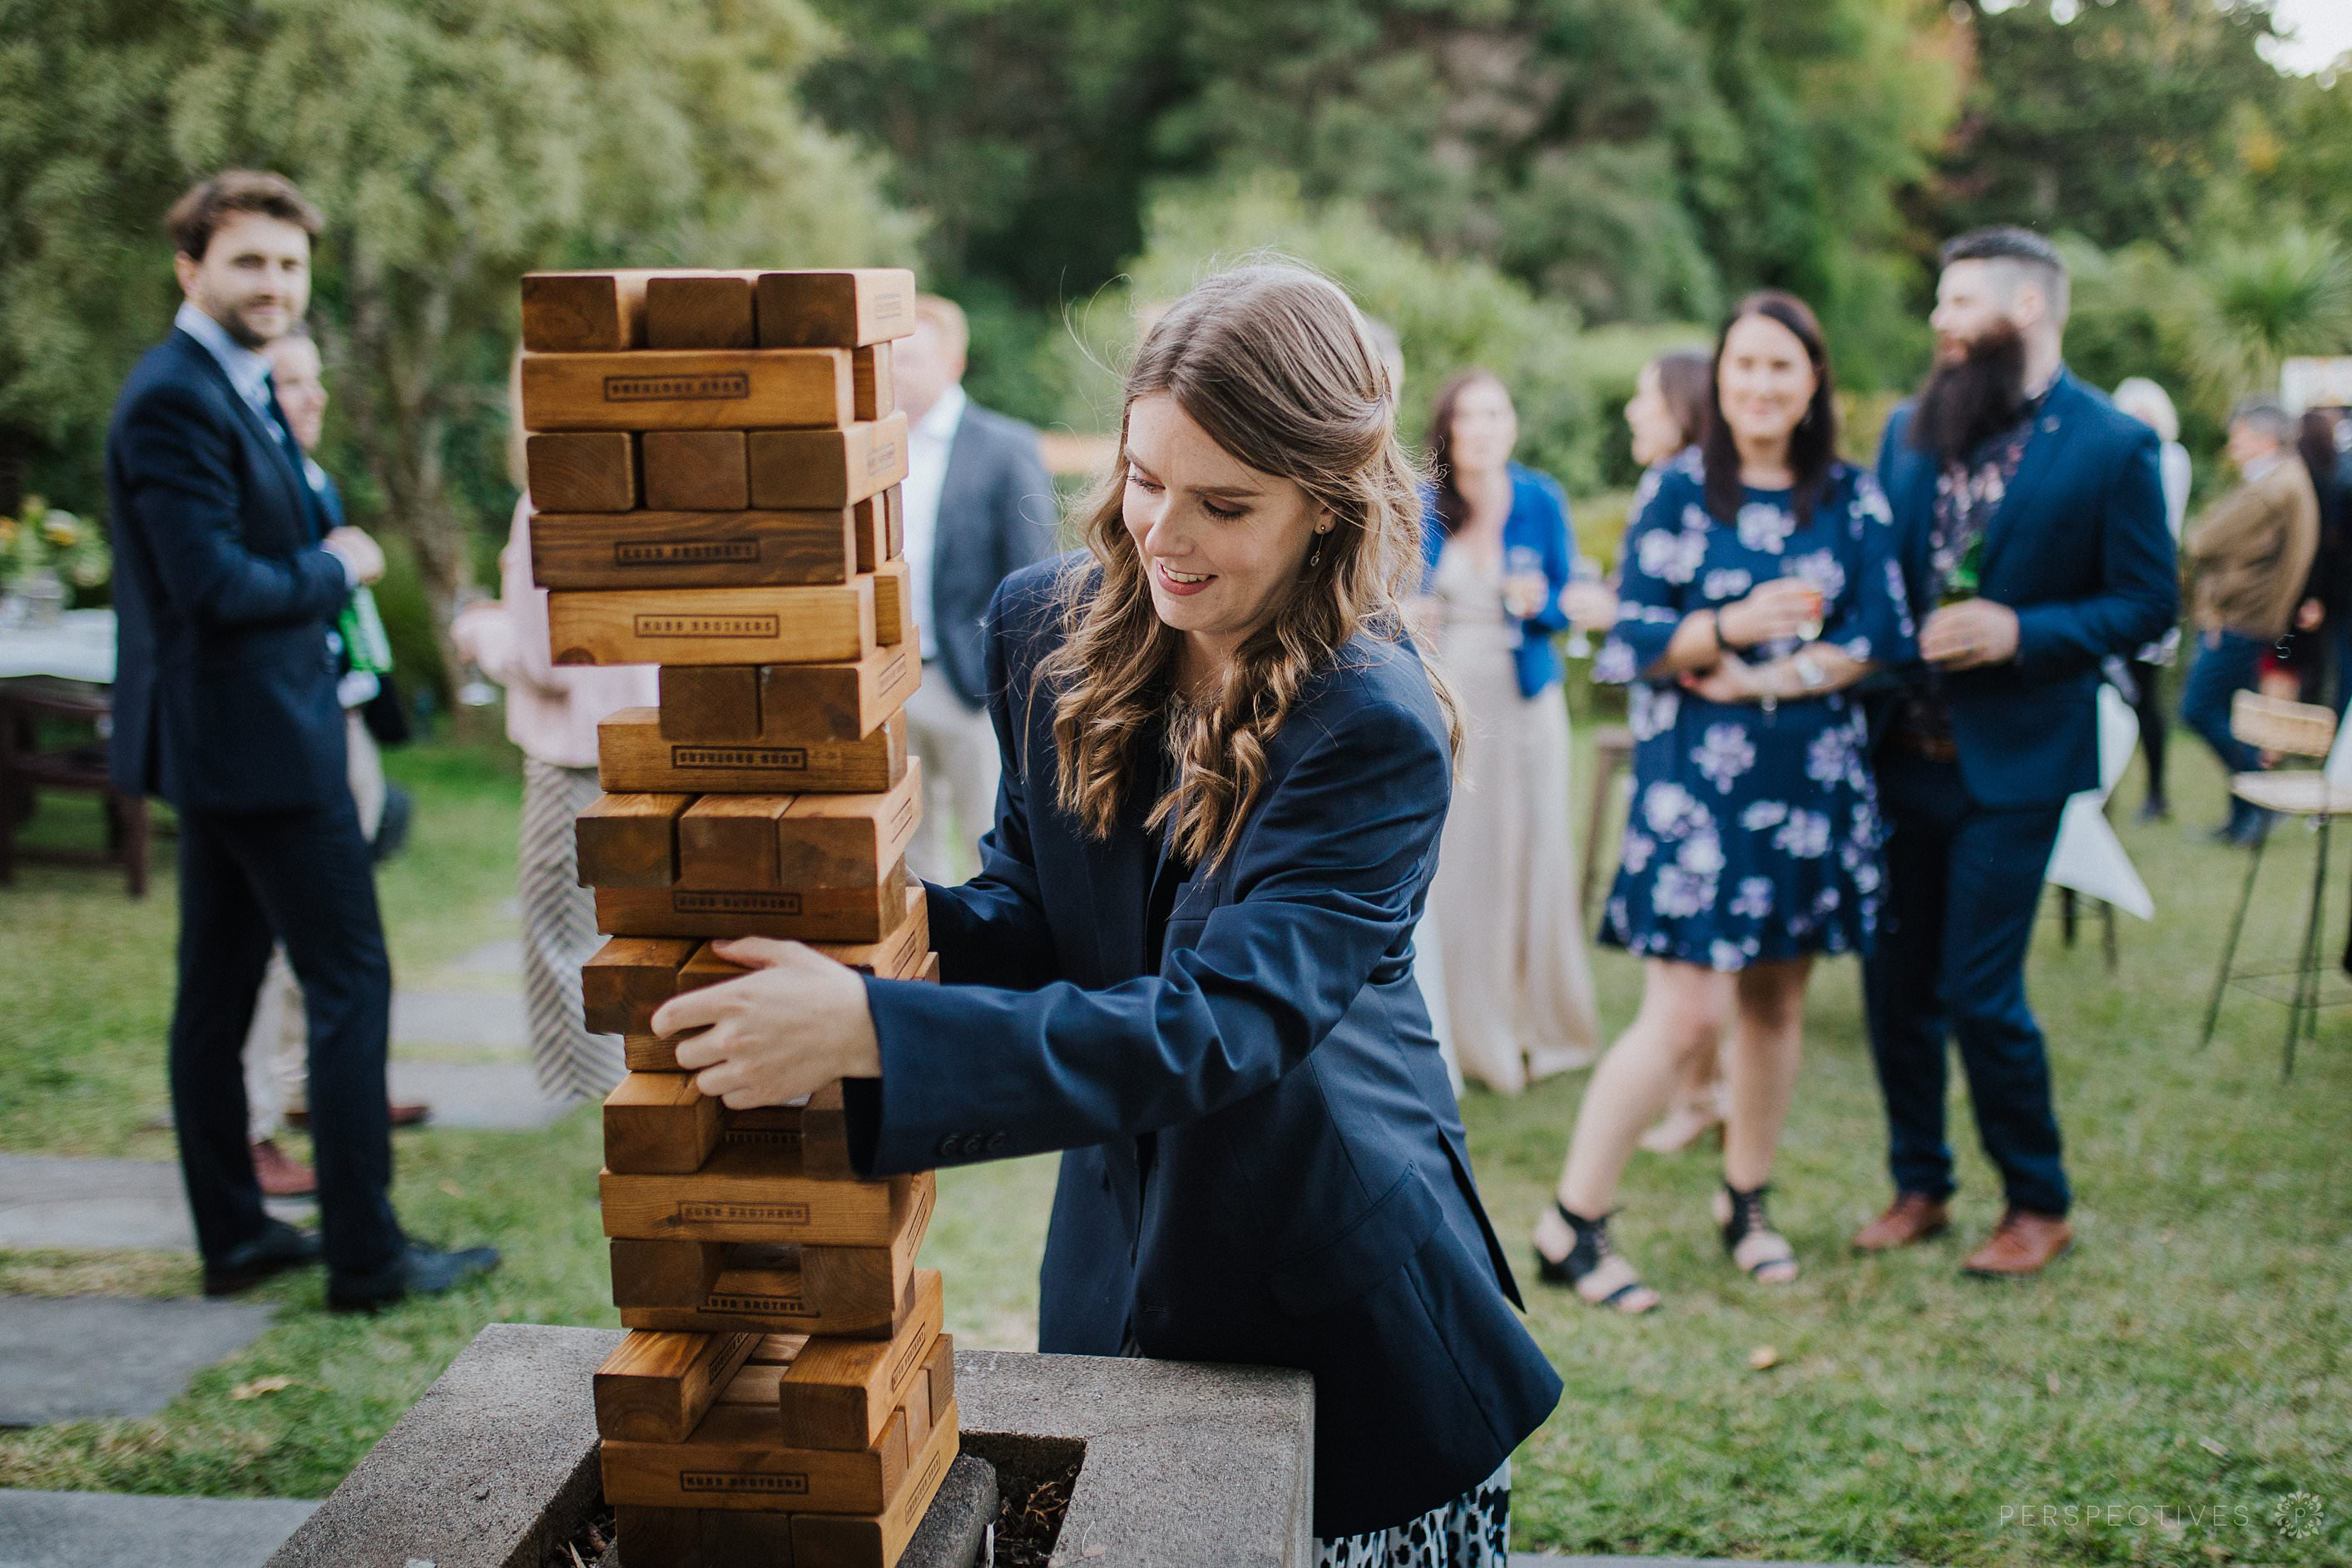 Outdoor lawn games at wedding in Auckland